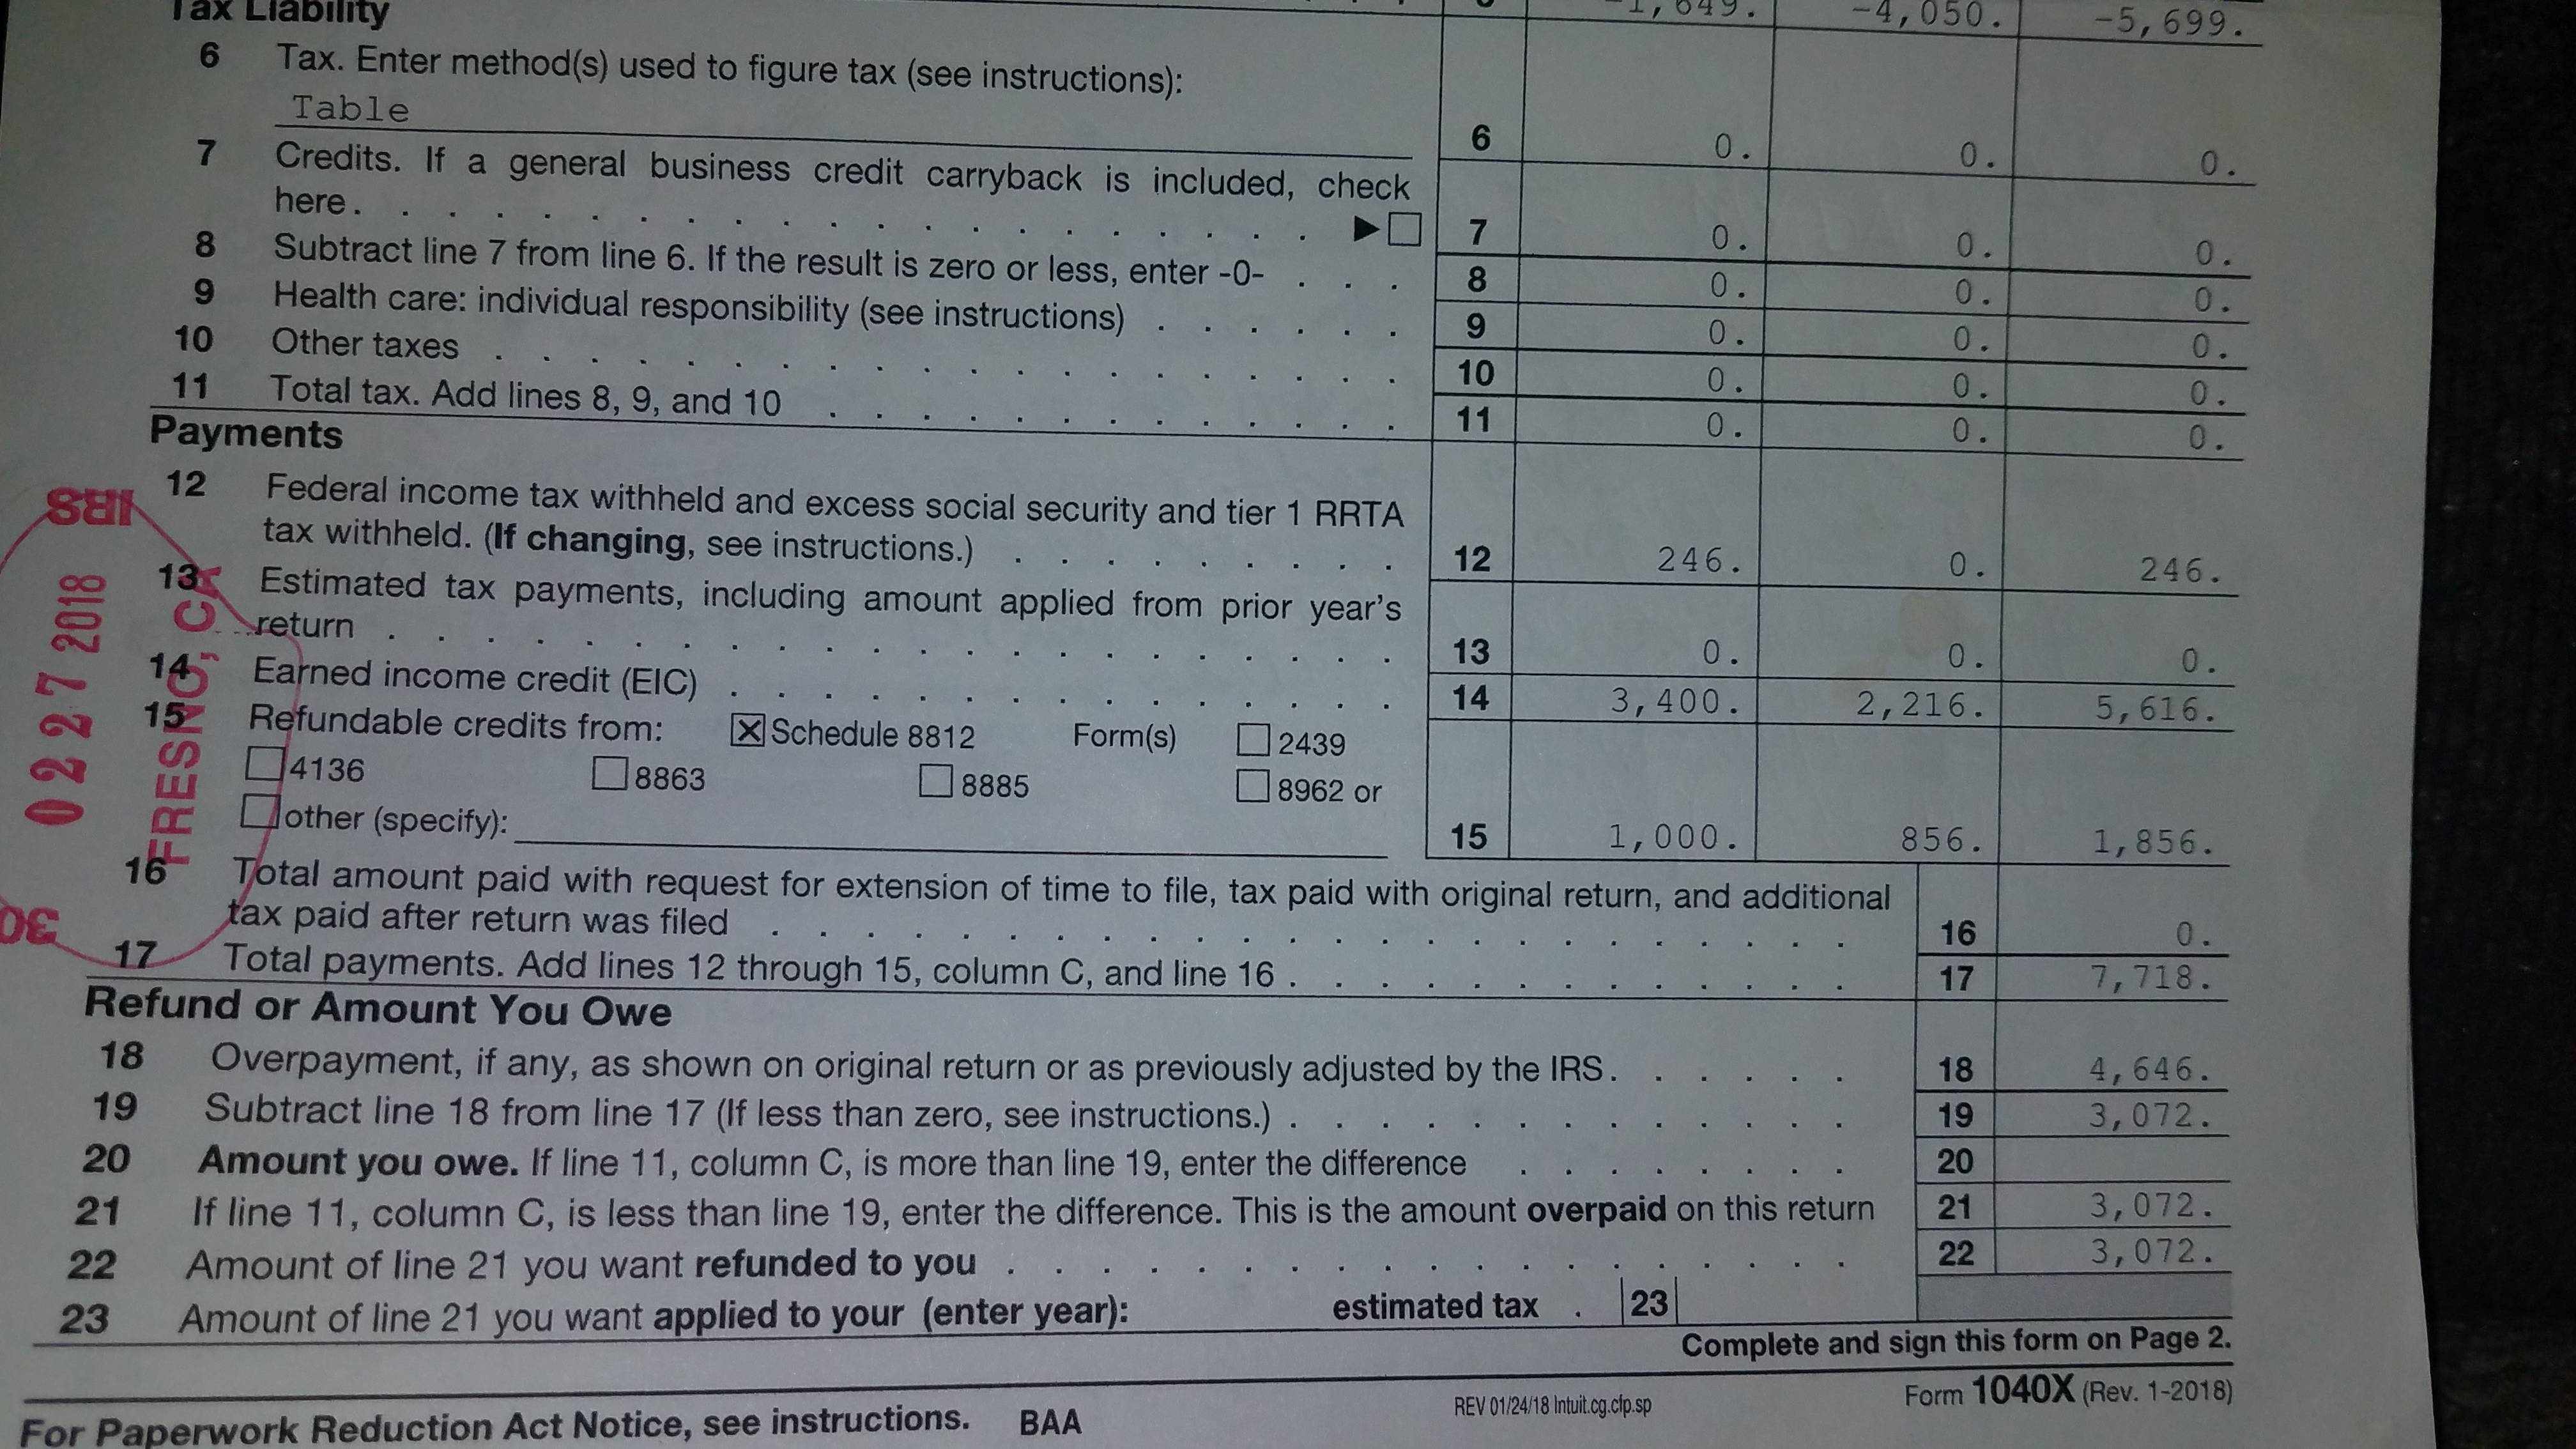 Form 8009 A Explain Your Entry Online 14 Of Your Amended Return